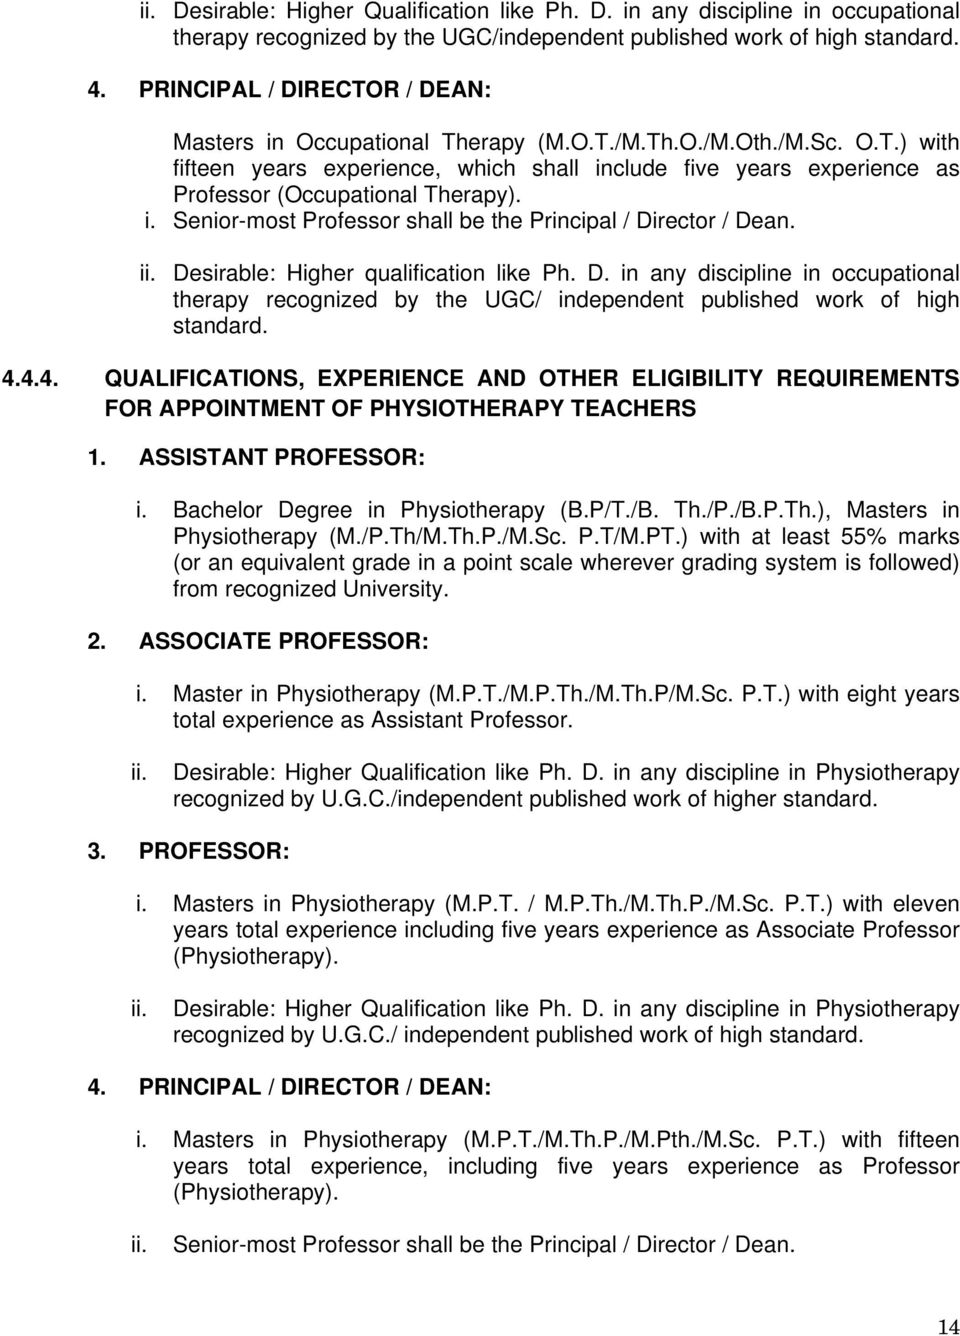 i. Senior-most Professor shall be the Principal / Director / Dean. ii. Desirable: Higher qualification like Ph. D. in any discipline in occupational therapy recognized by the UGC/ independent published work of high standard.